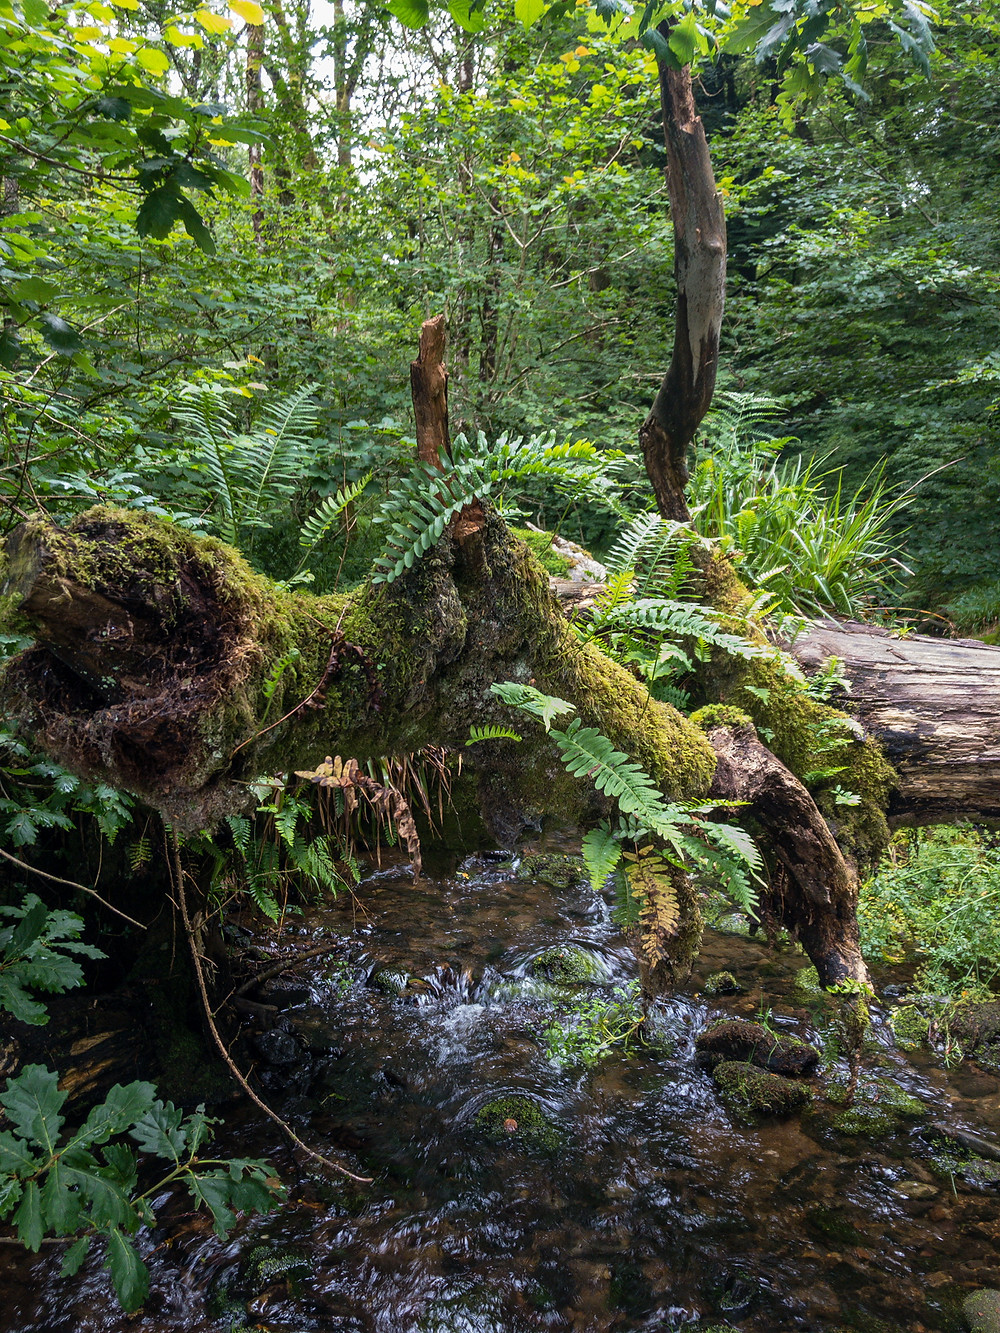 Enchanted woodland with ferns and moss growing on a fallen tree